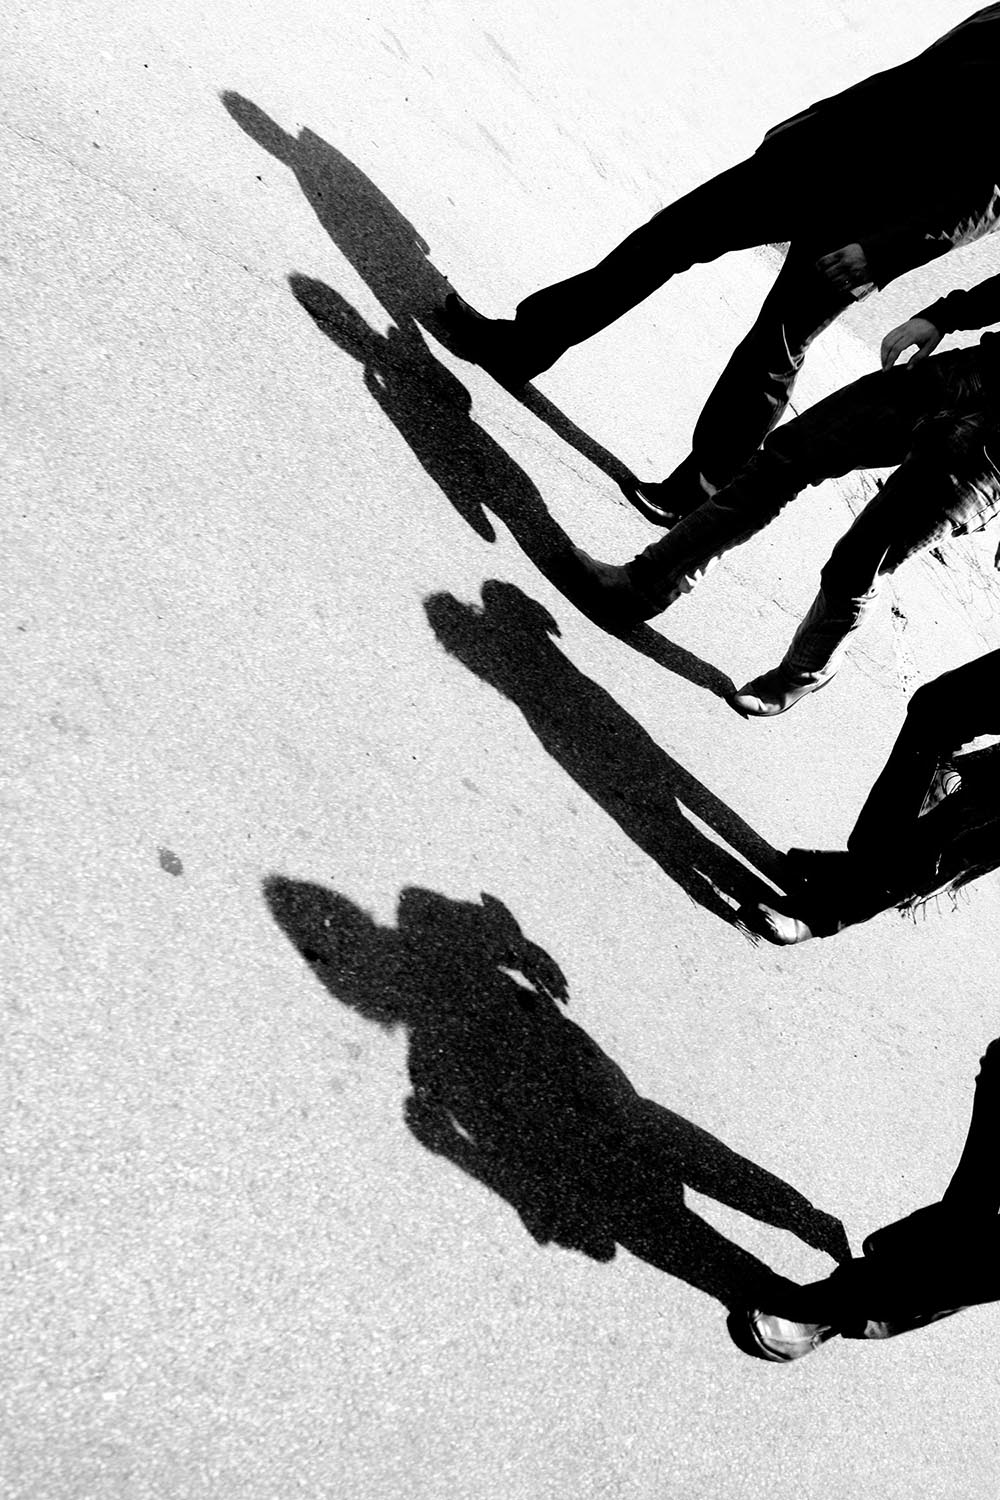 Black and white photograph of four men casting shadows on the street while walking.